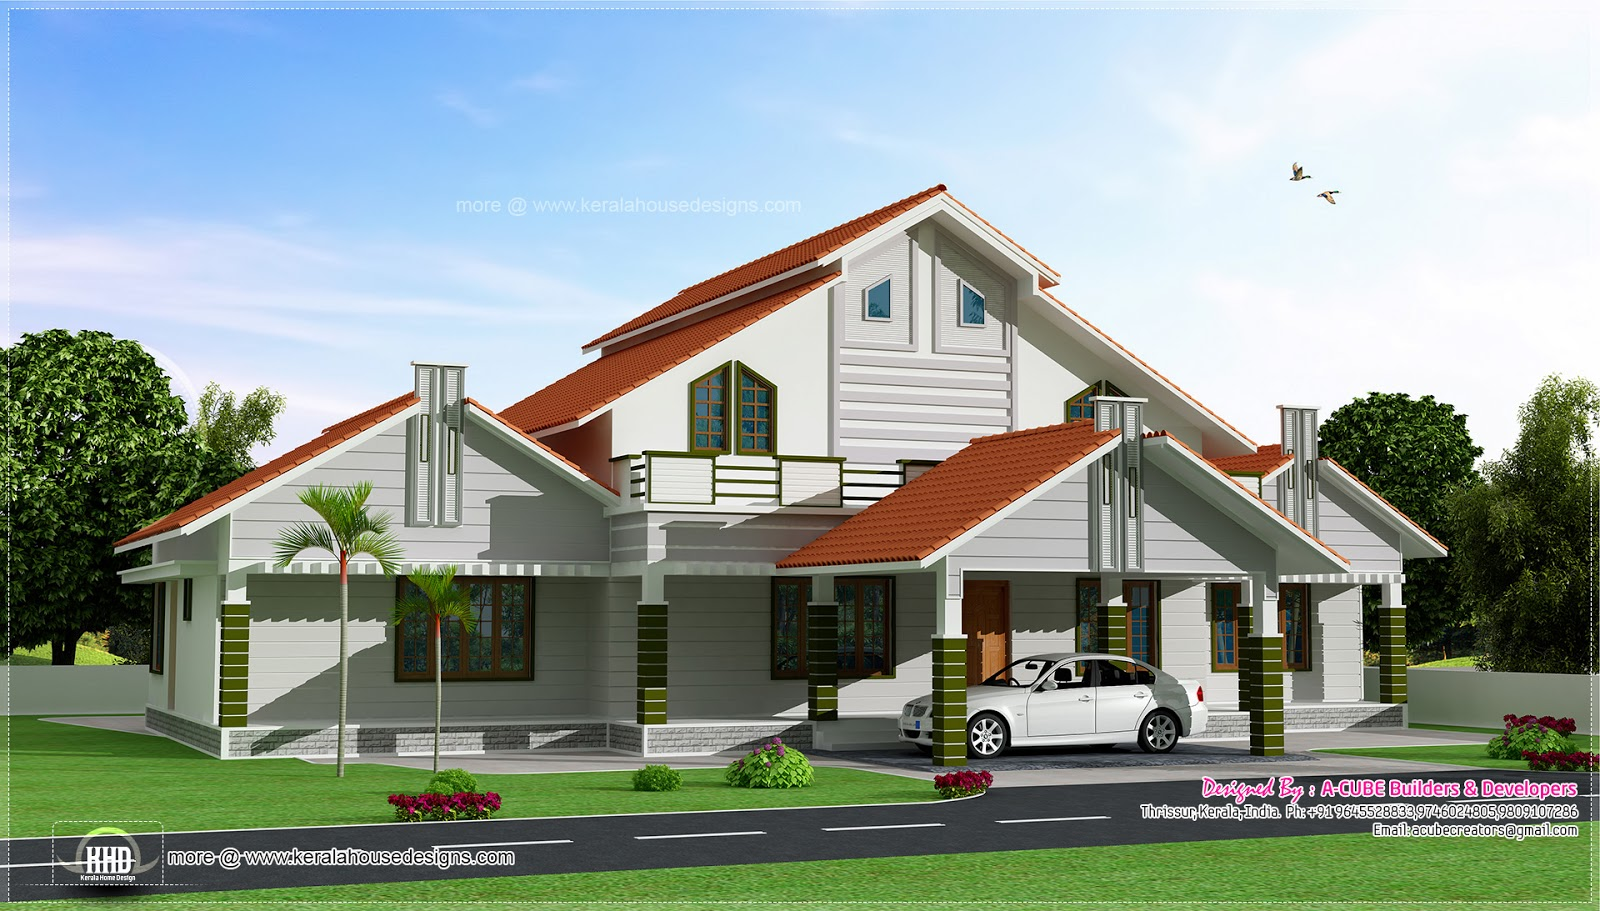 Single floor house looks like a double floor house for Sloped roof house plans in india